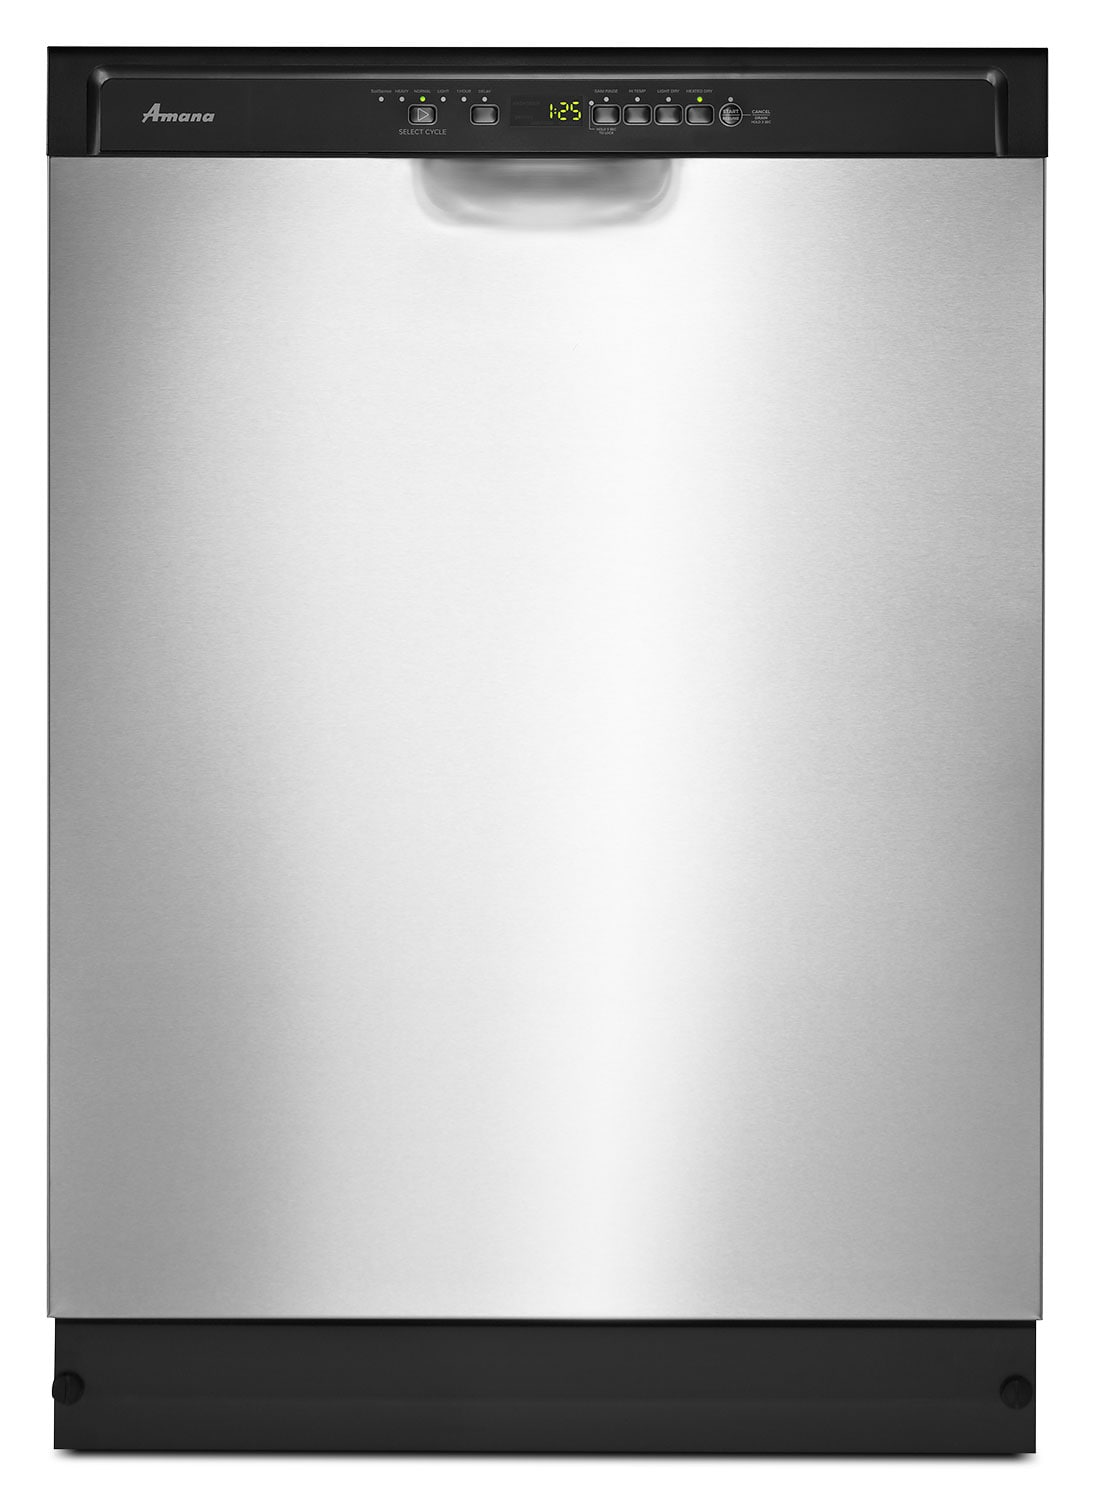 "Clean-Up - Amana 24"" Stainless Steel Dishwasher - ADB1700ADS"